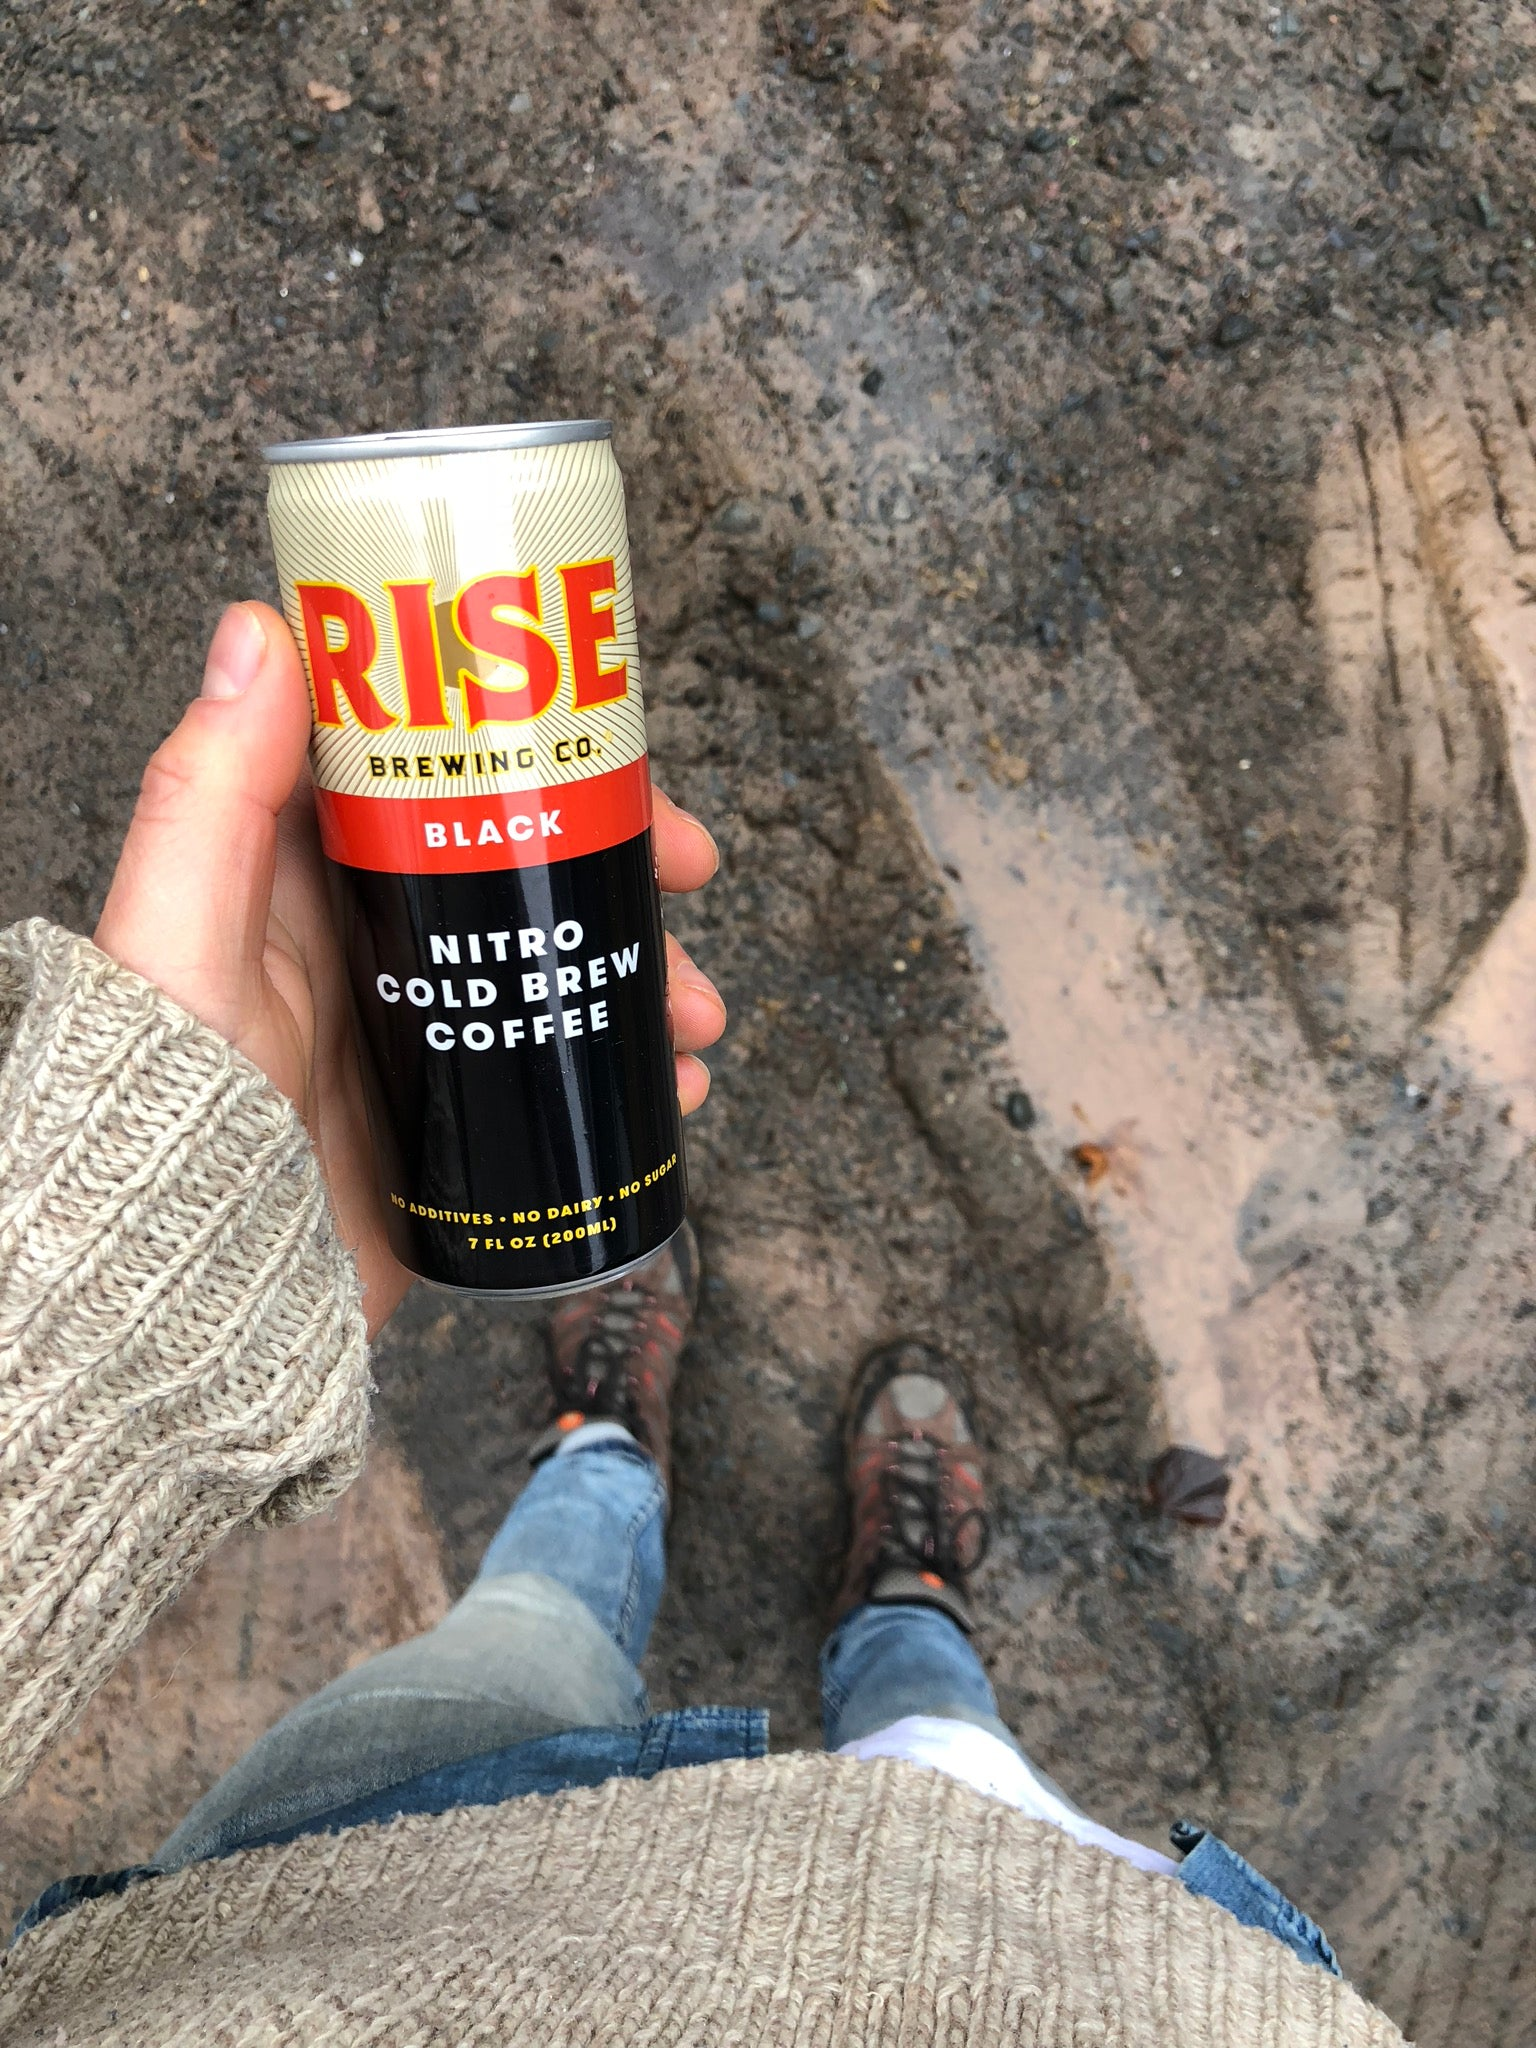 Can of RISE nitro cold brew coffee, Original Black - RISE Brewing Co.